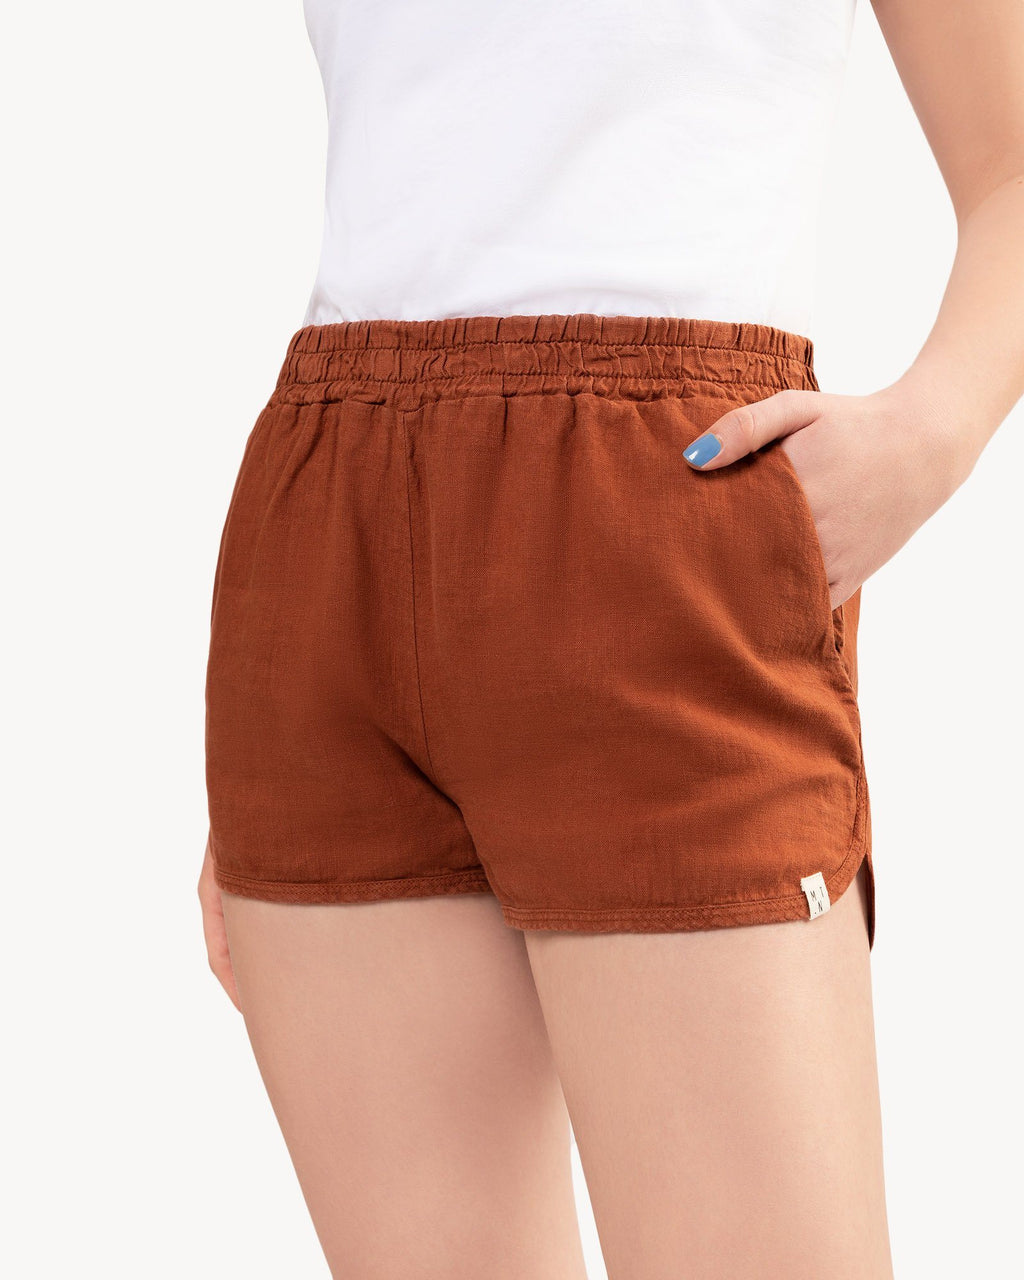 variant_1 | EN Shorts Red Brown Women MATONA | DE Shorts kurze Hose Rot Braun Damen MATONA